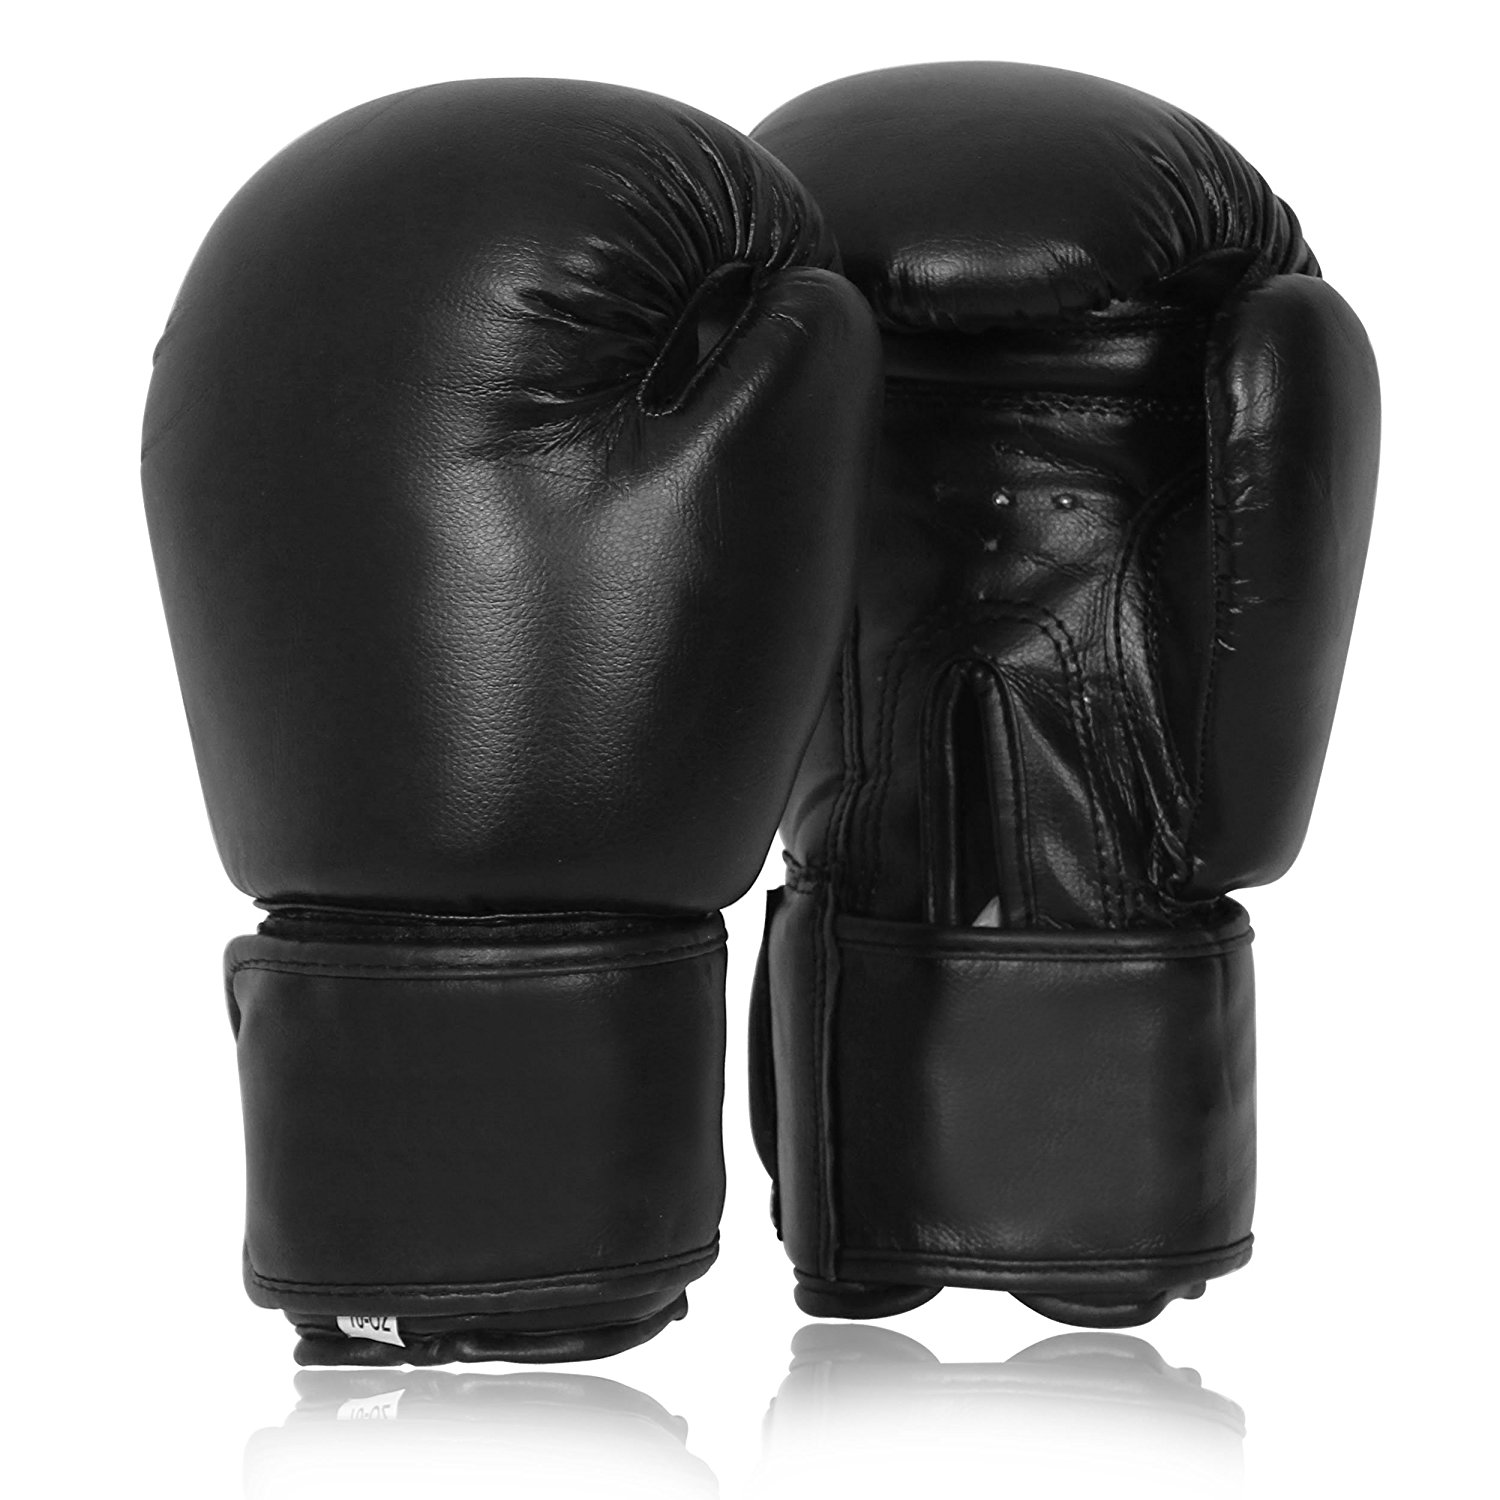 Boxing Gloves   Sparring Gloves - Perform Better 7dfe2ad032a30